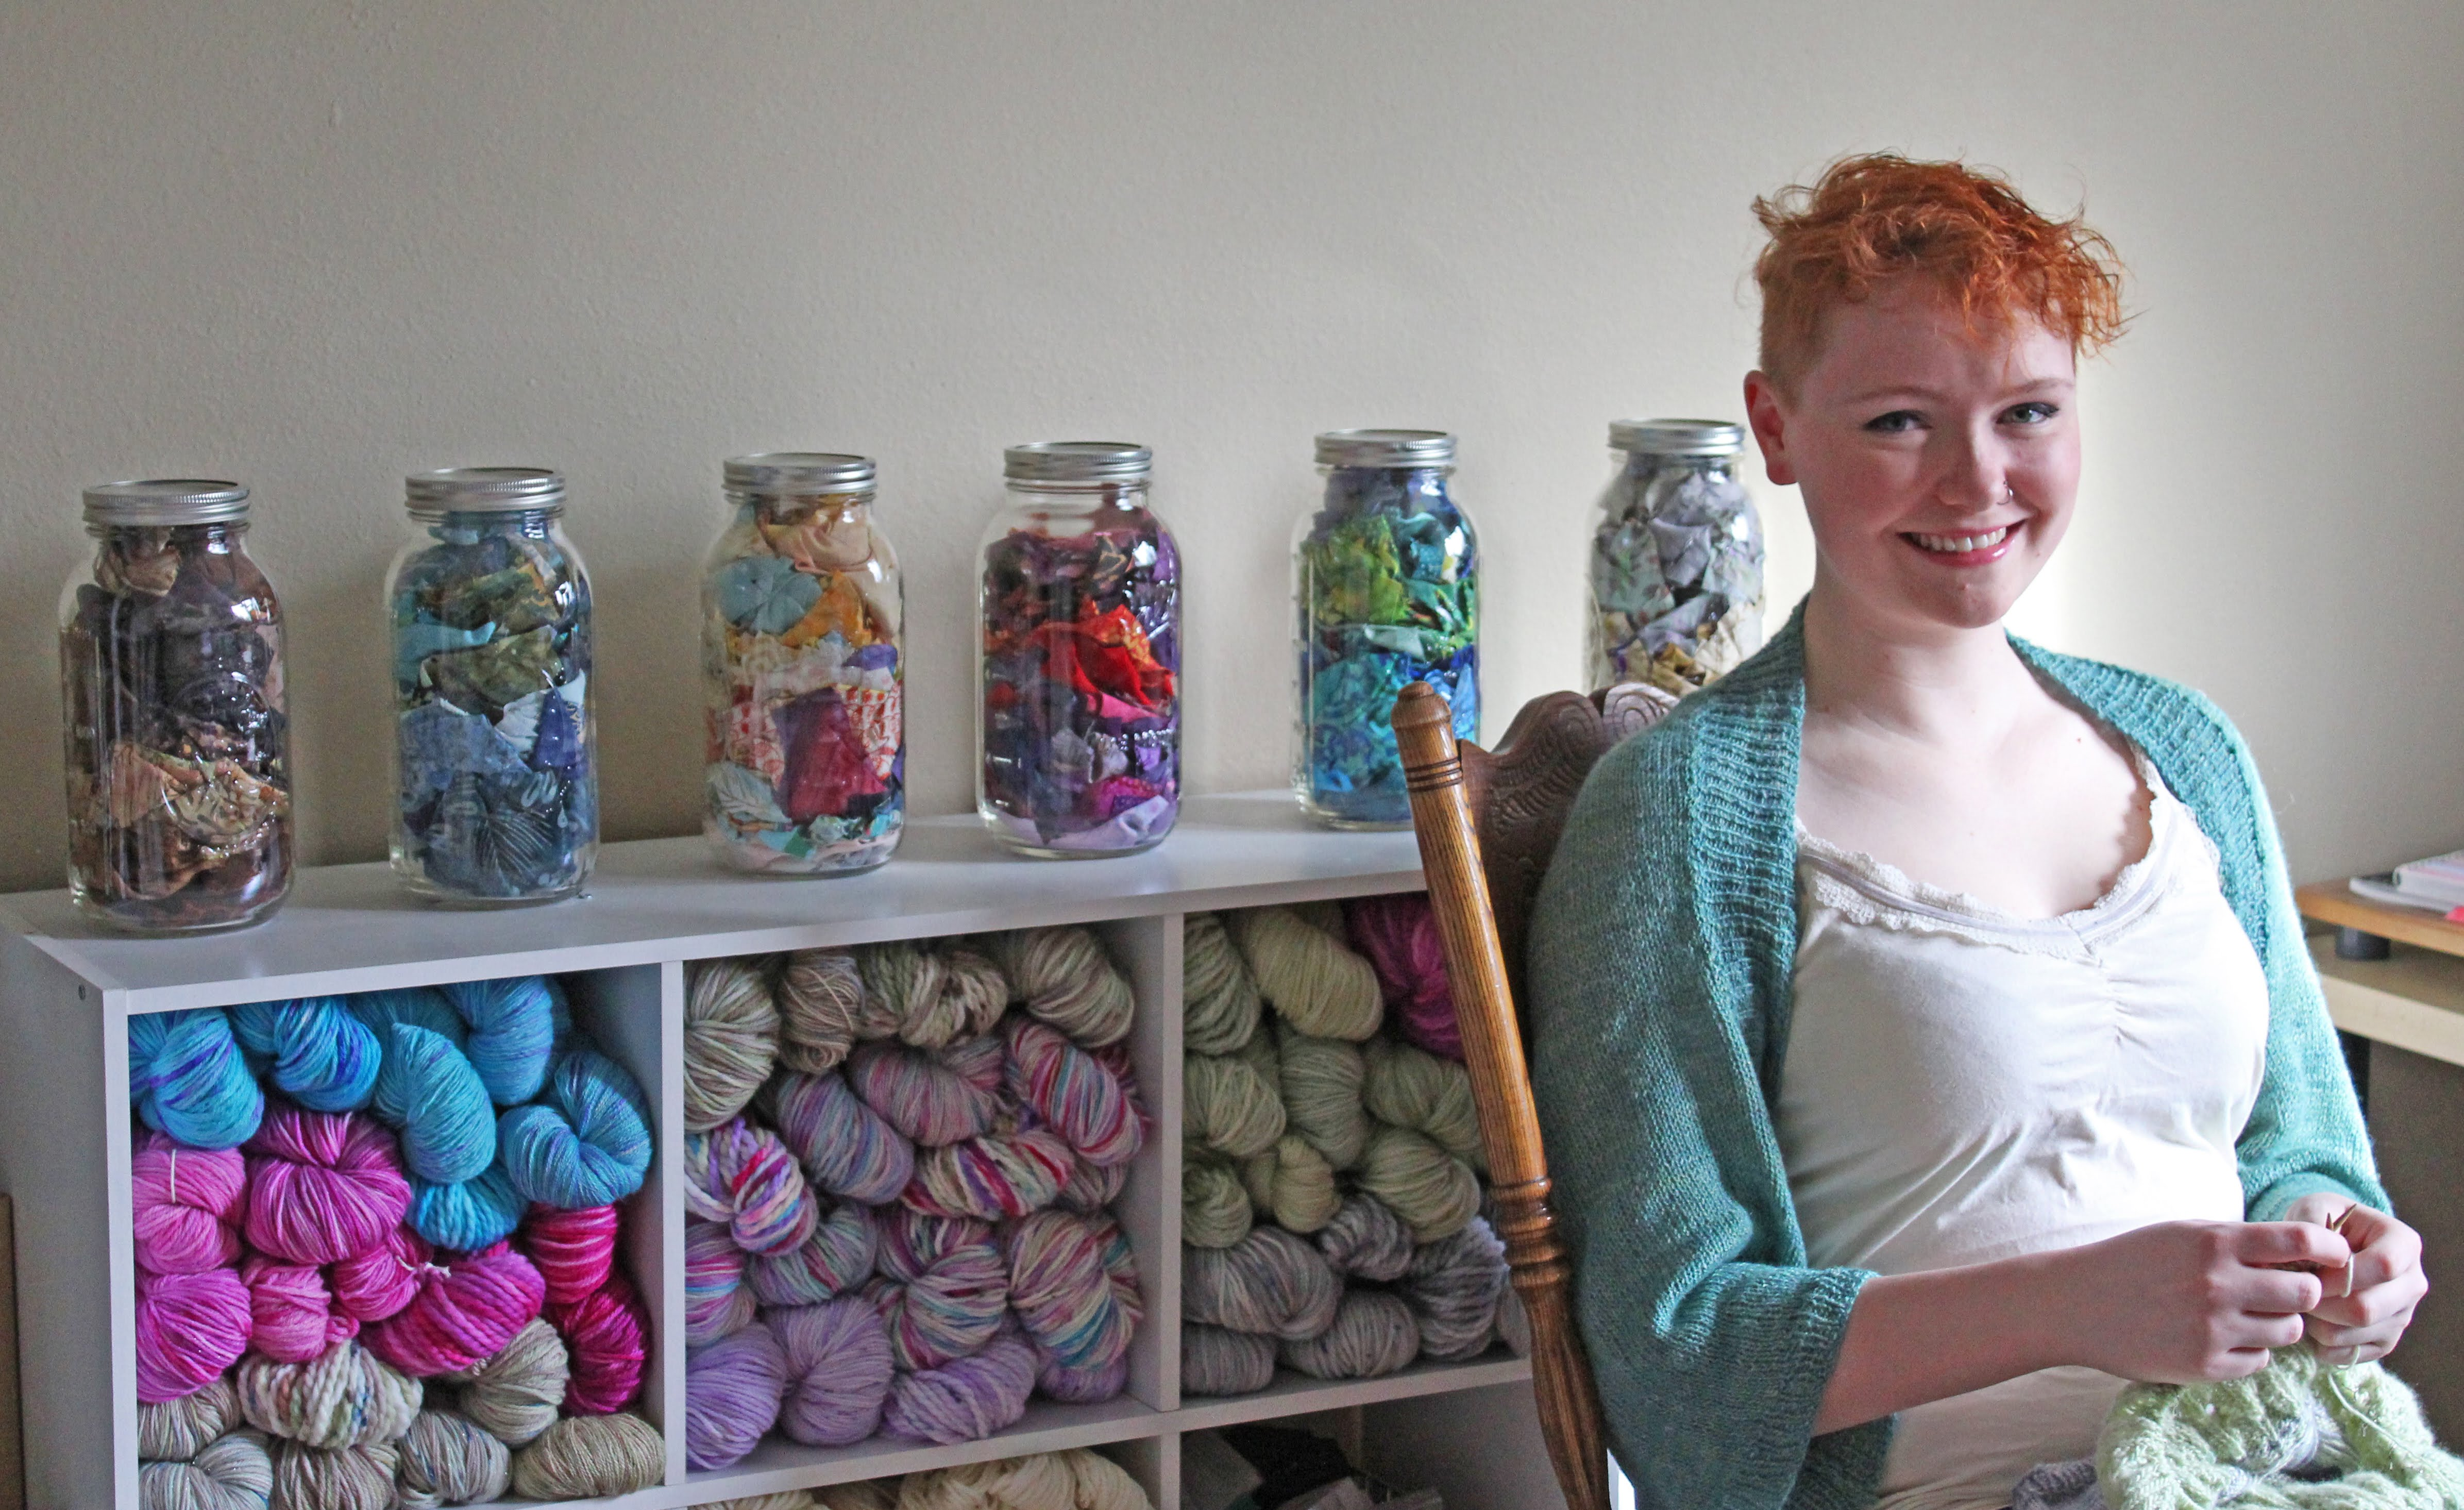 interview - Katie relaxing among her creations